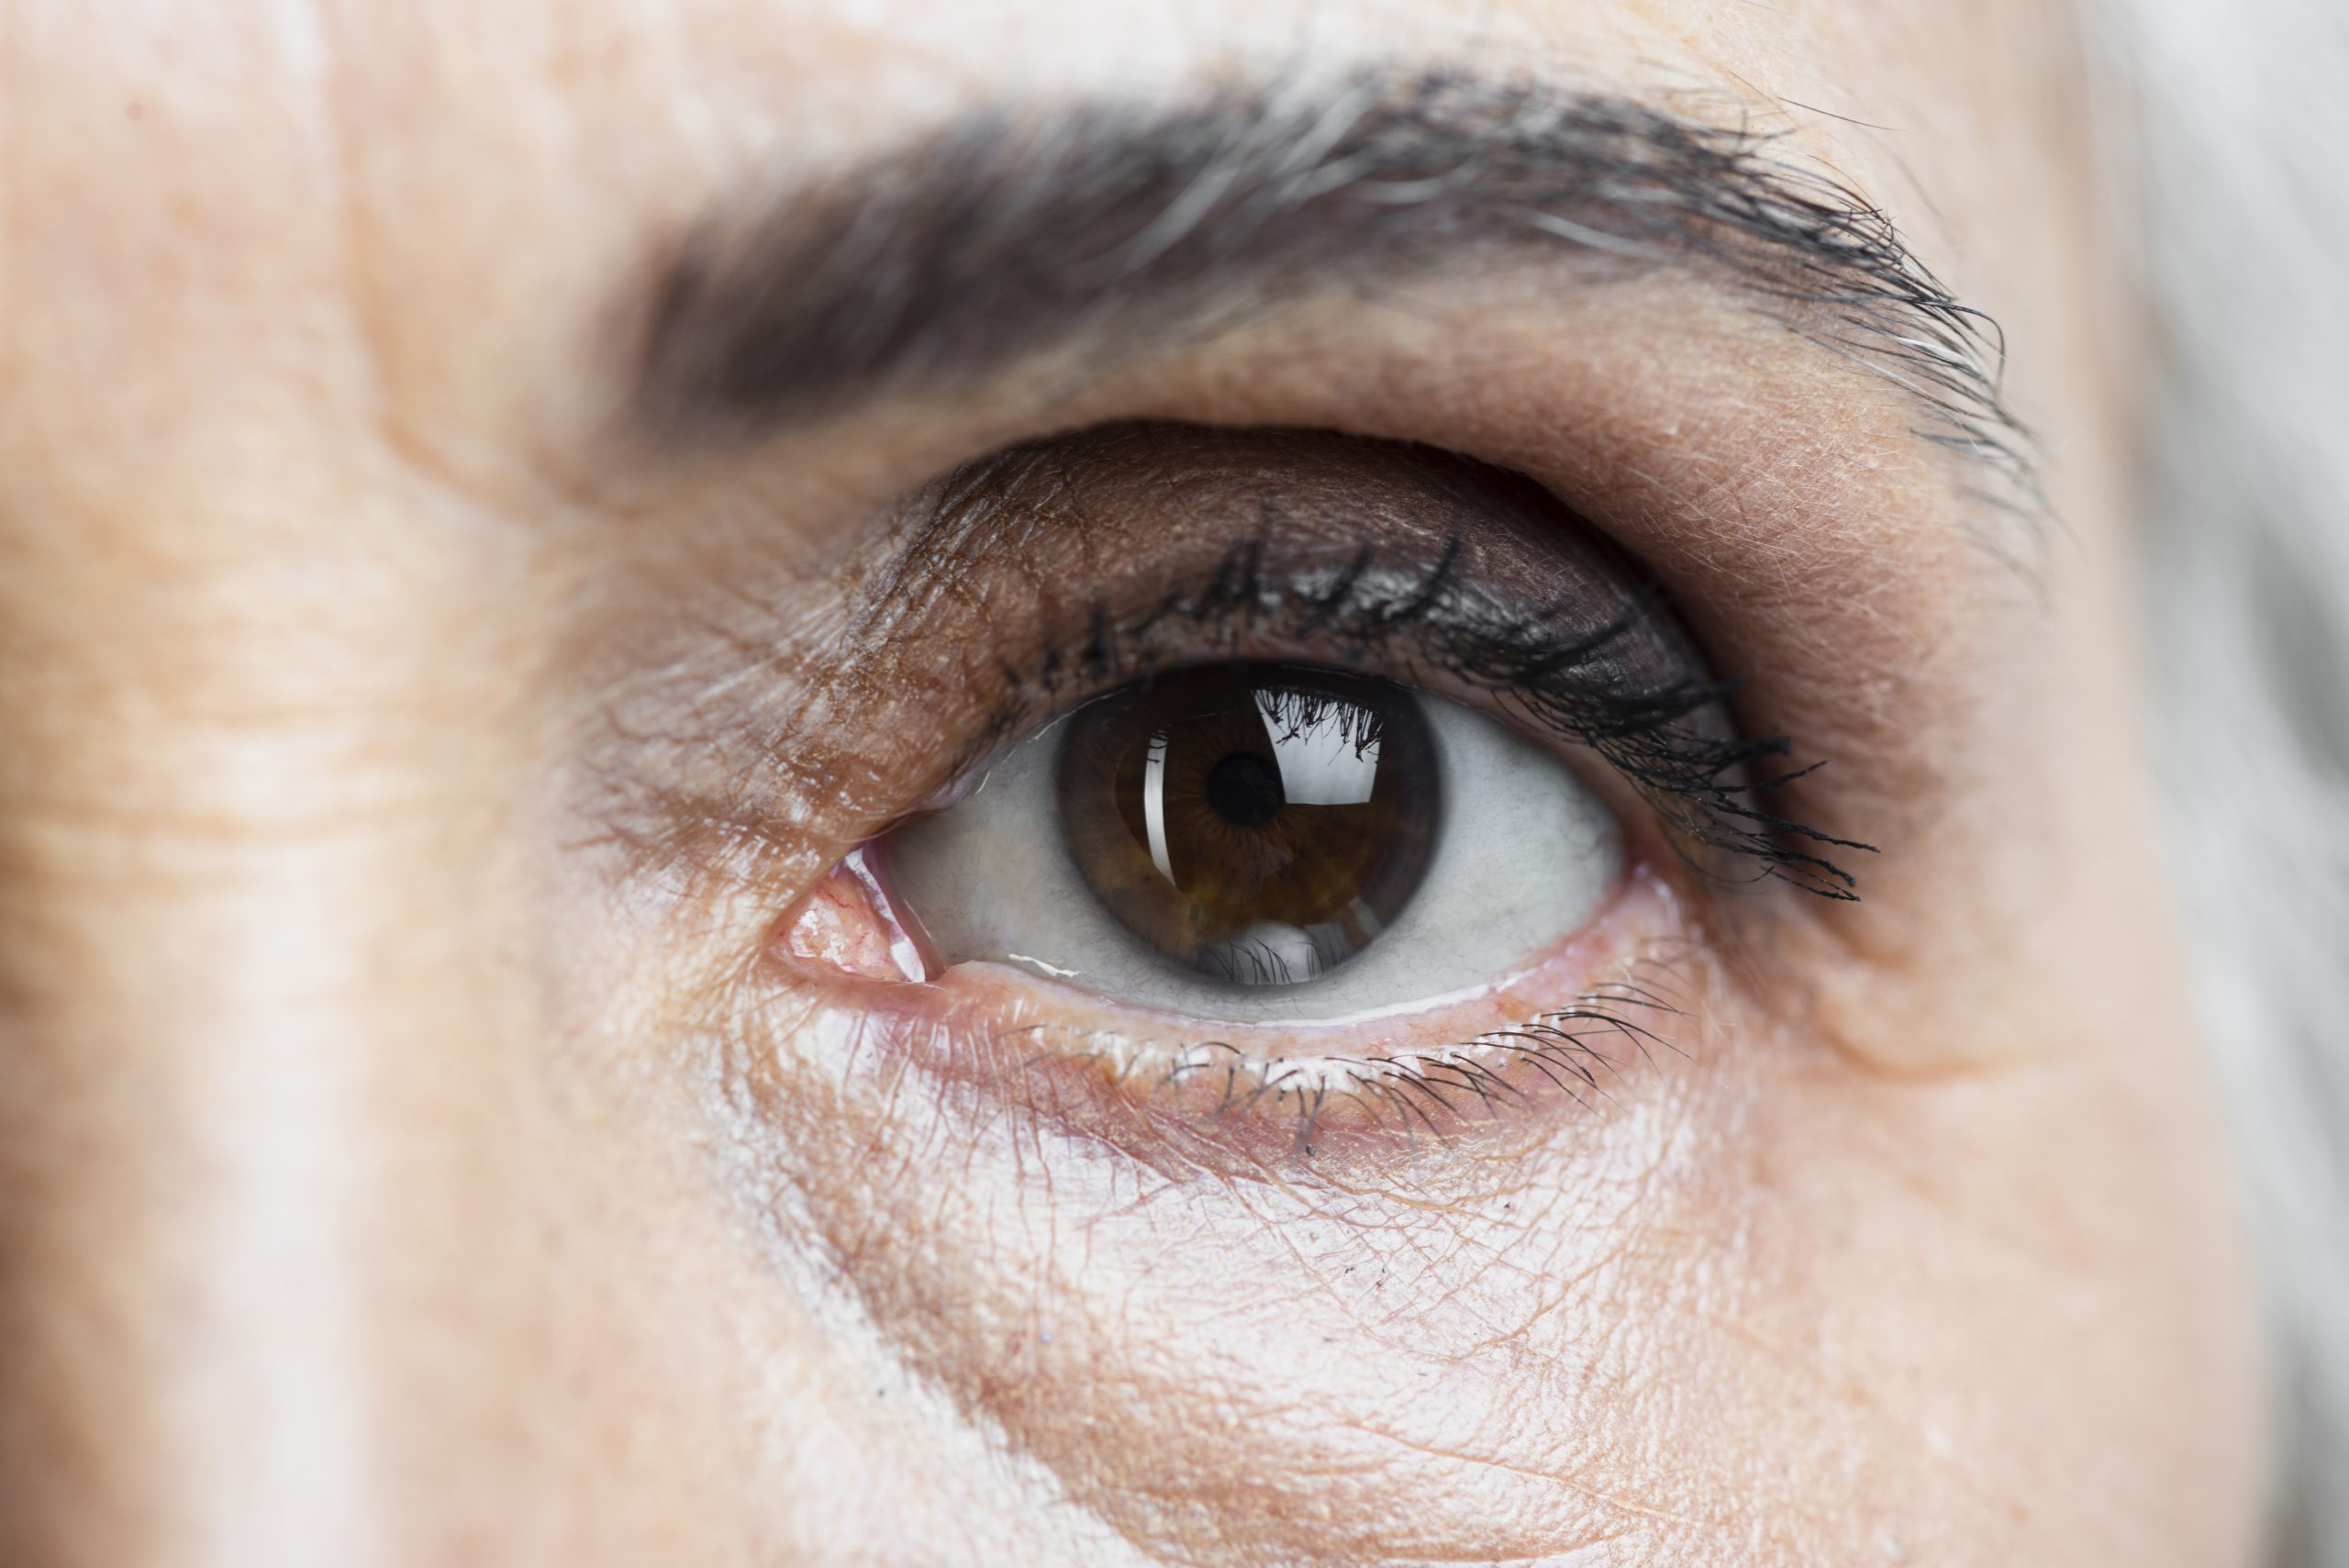 Close-up of an older woman's eye for a glaucoma test